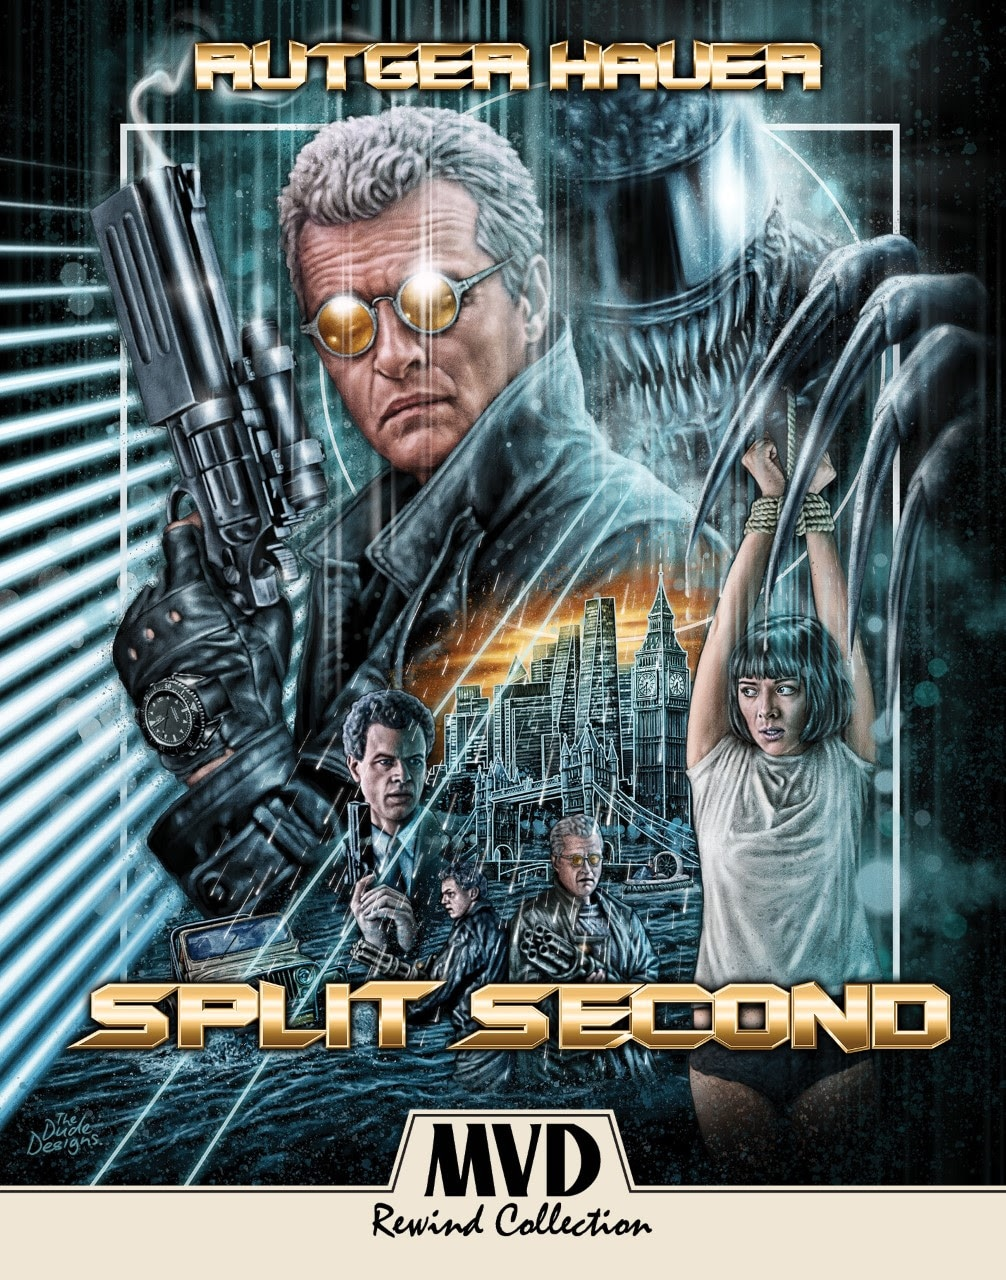 Split Second Poster - SPLIT SECOND Starring Rutger Hauer Makes Its Long-Awaited Debut On Blu-ray August 11th